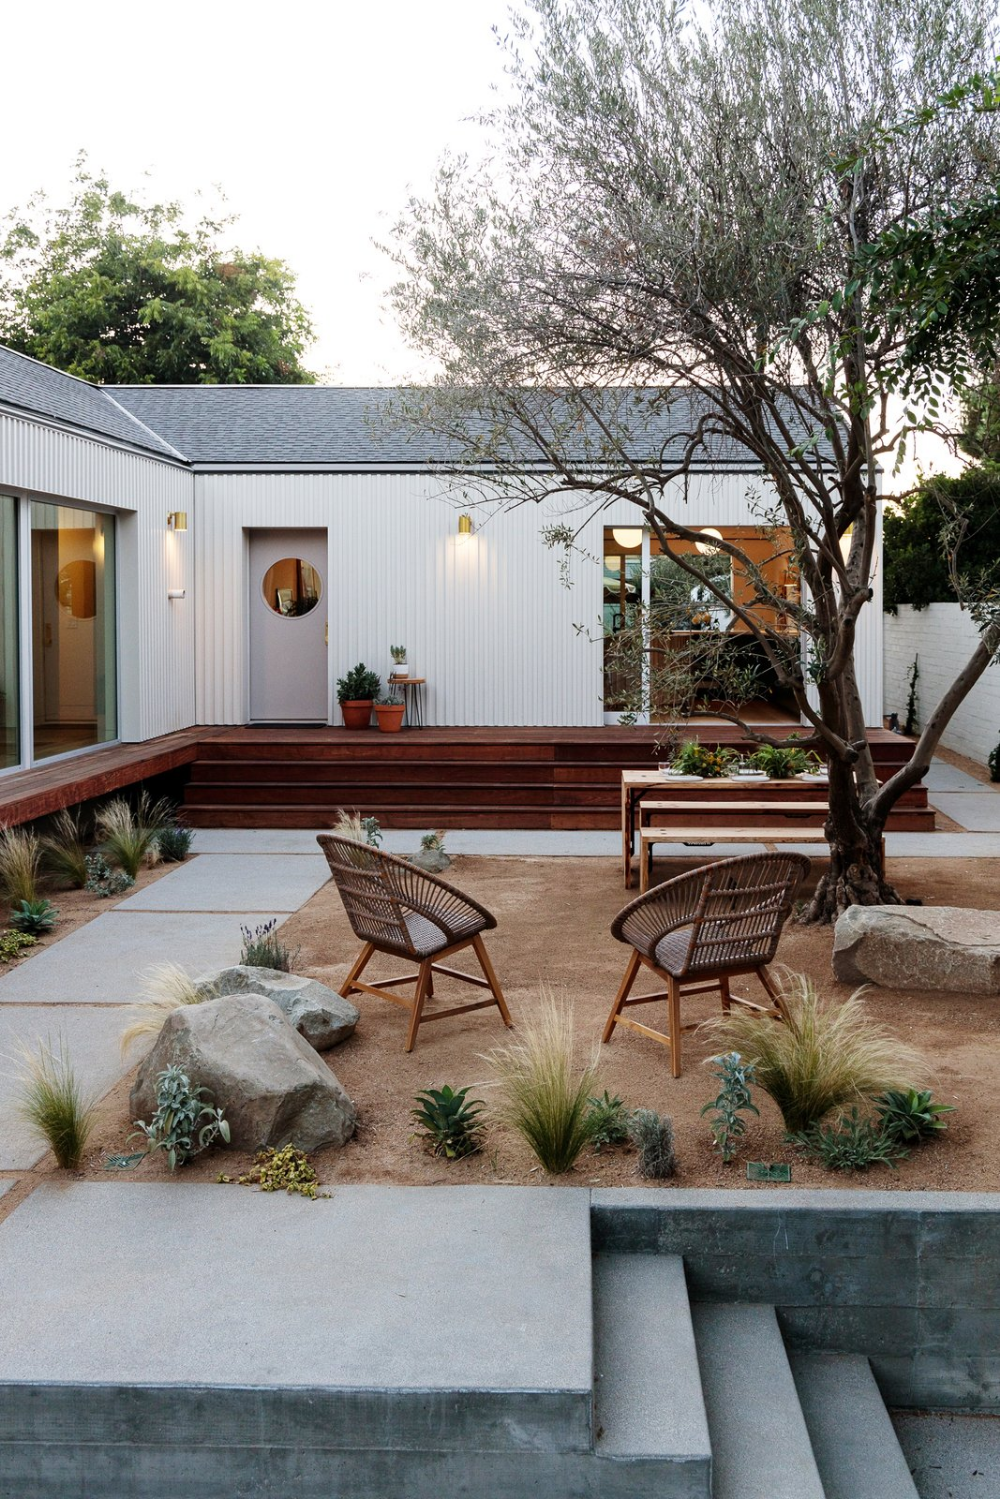 34 Samples Of Modern Houses Most Popular Exterior Design: Photo 19 Of 21 In My House: An Architect Couple's Playful Courtyard…